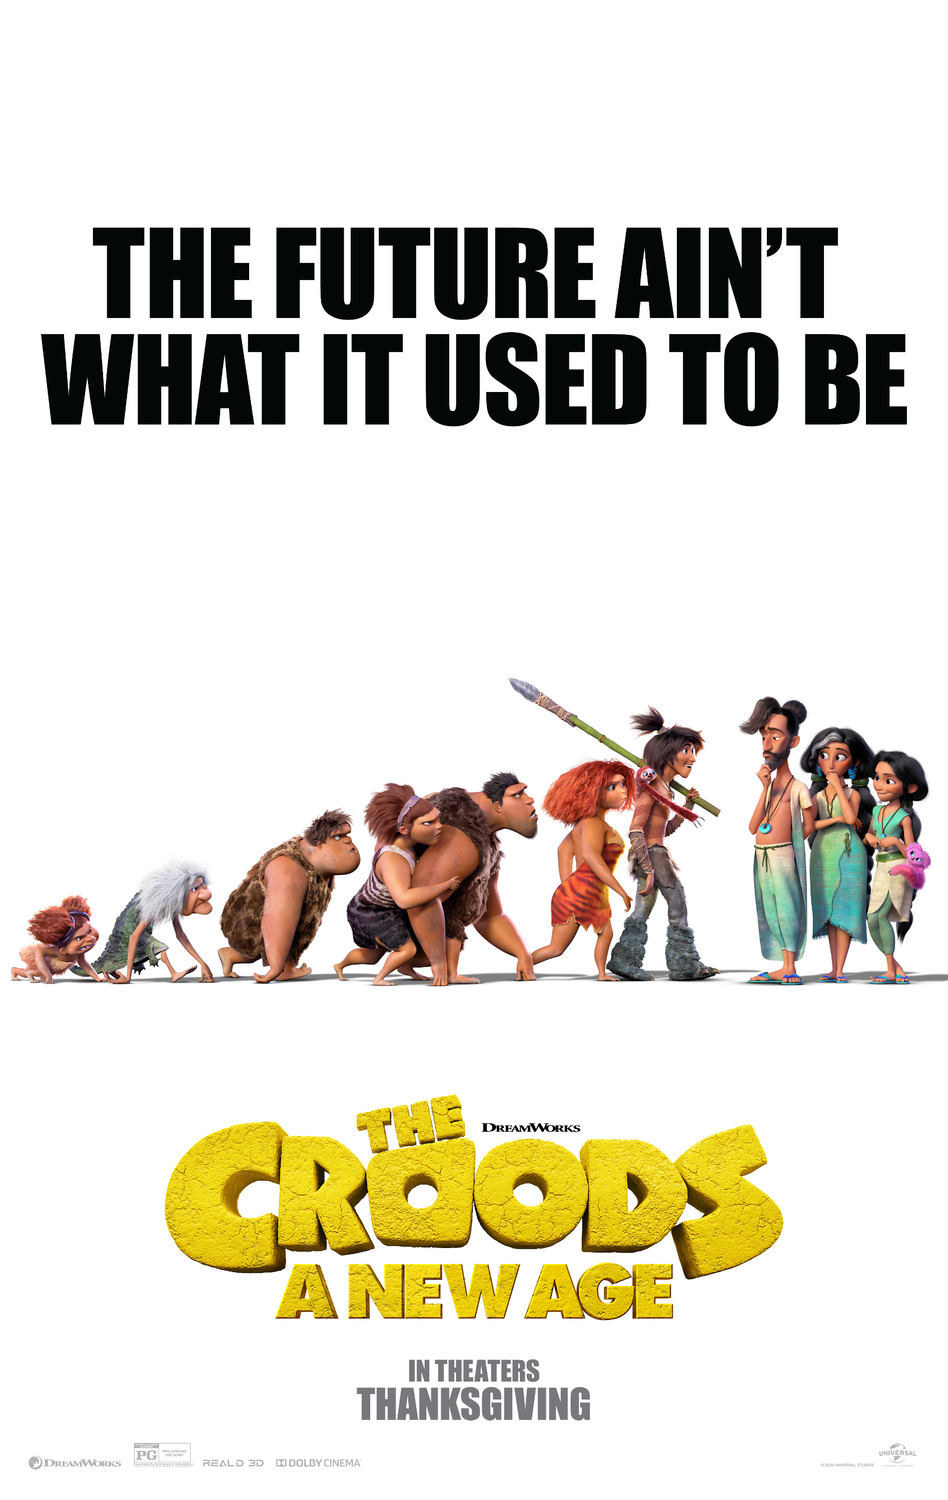 The Croods: A New Age | Poster Concept Design